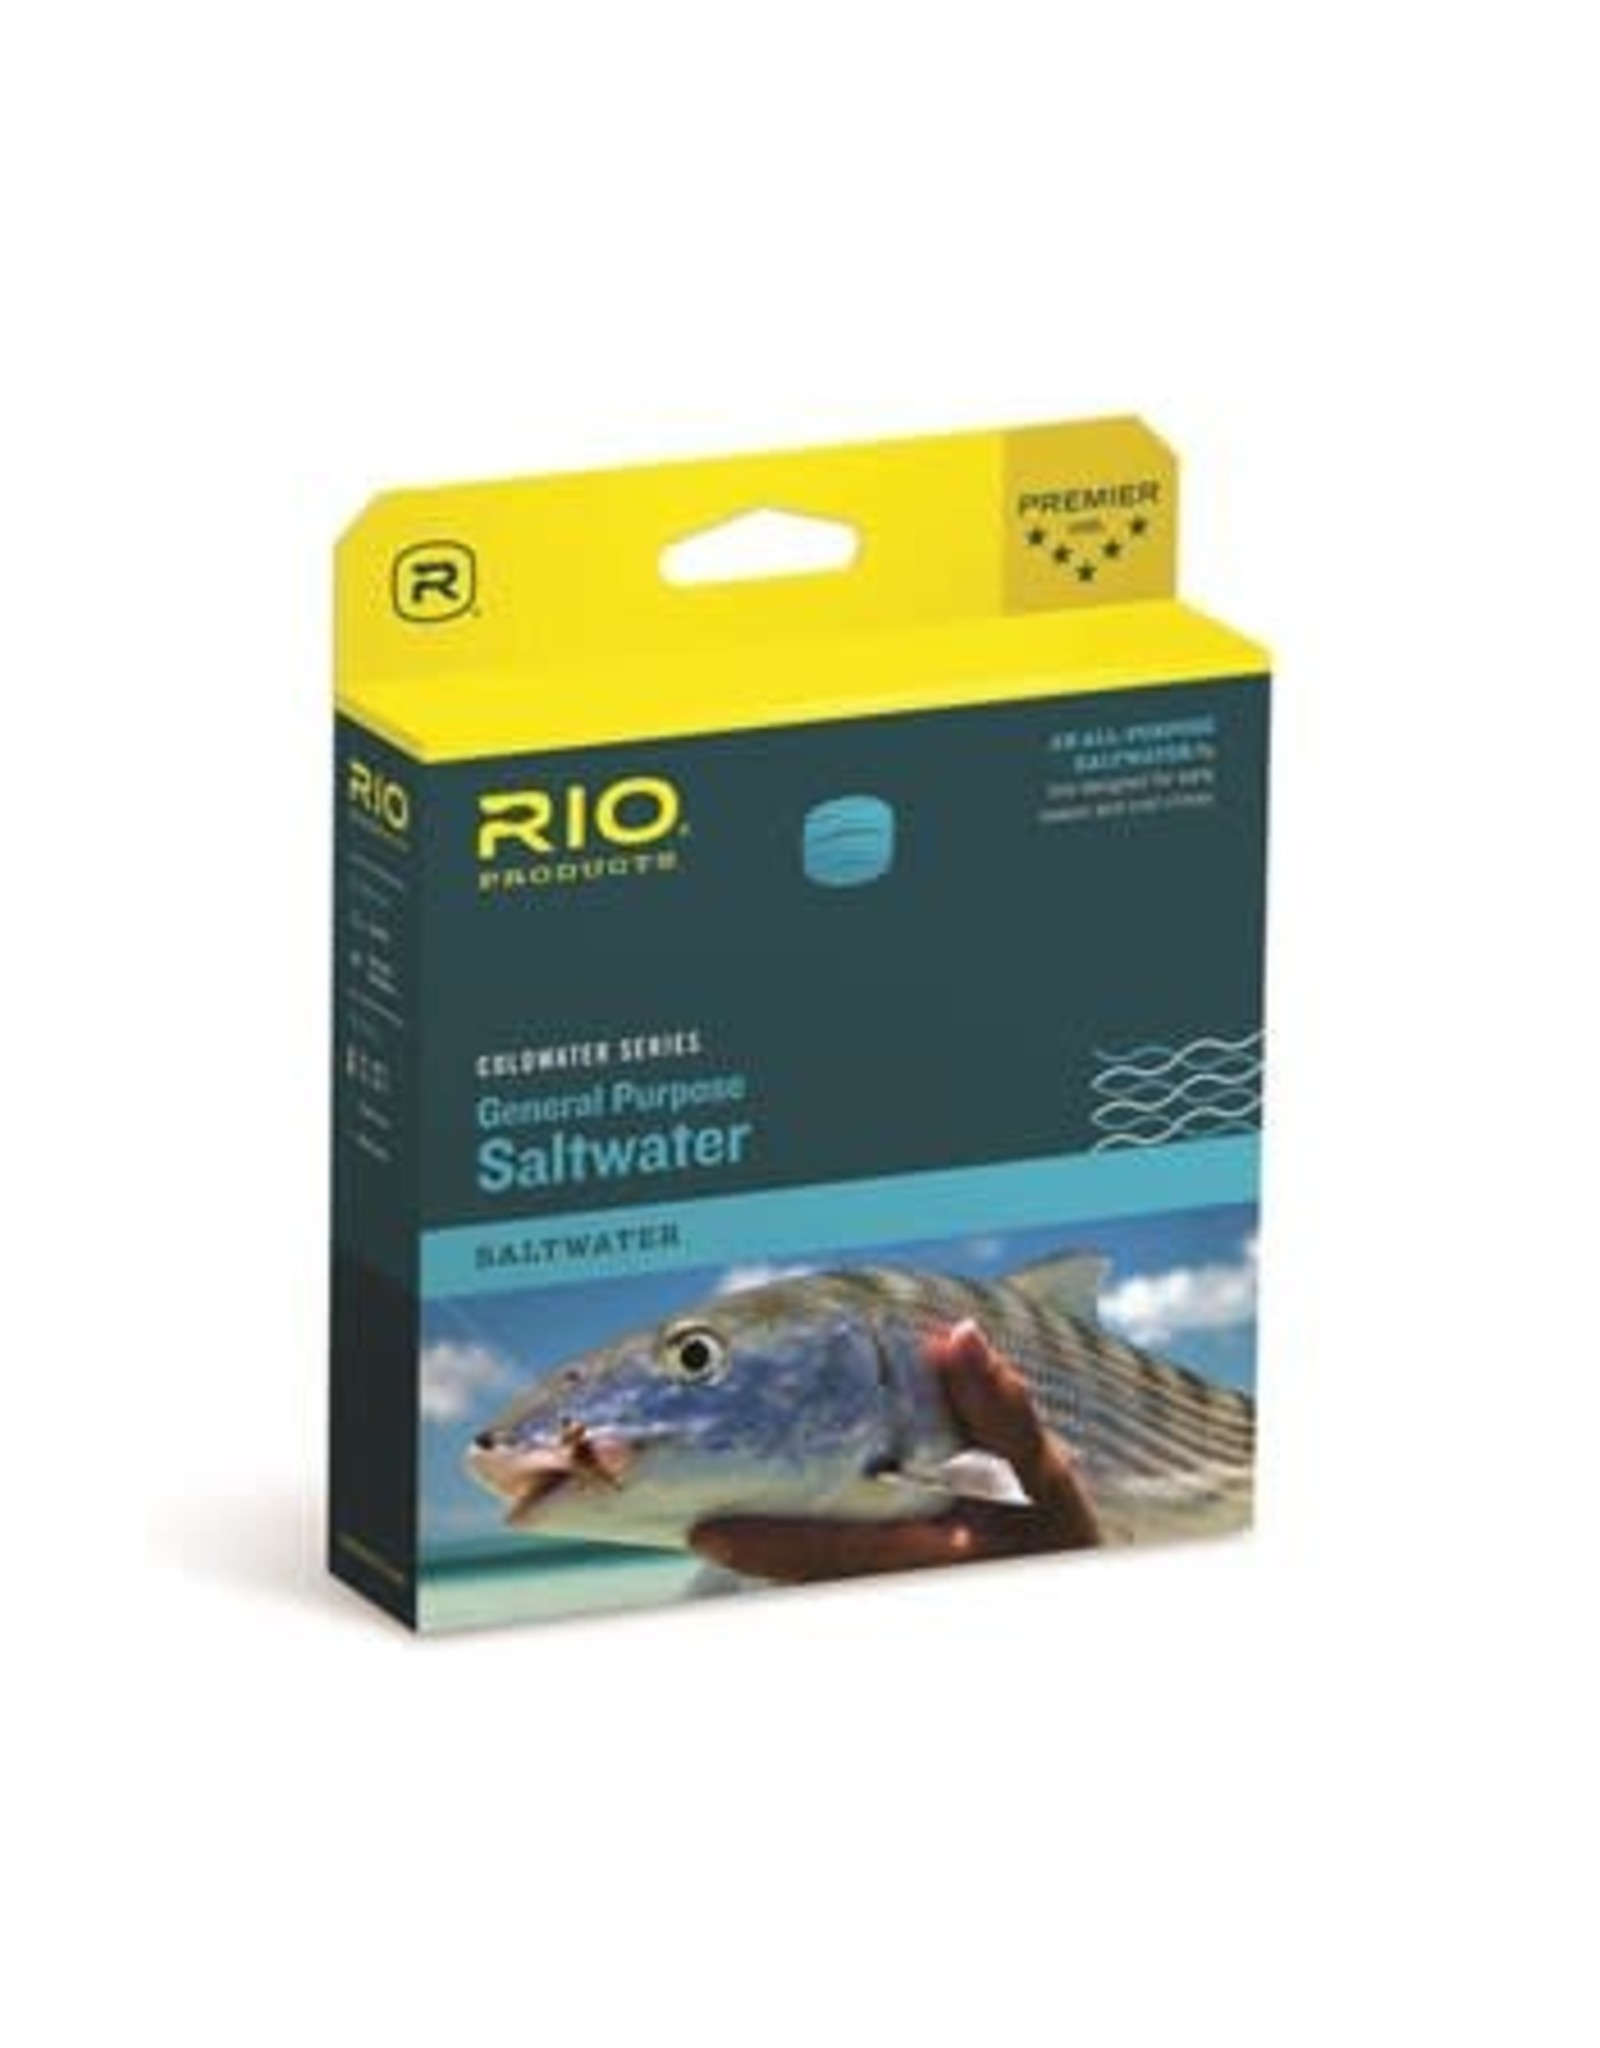 Rio Coldwader Geneal Purpose Saltwater